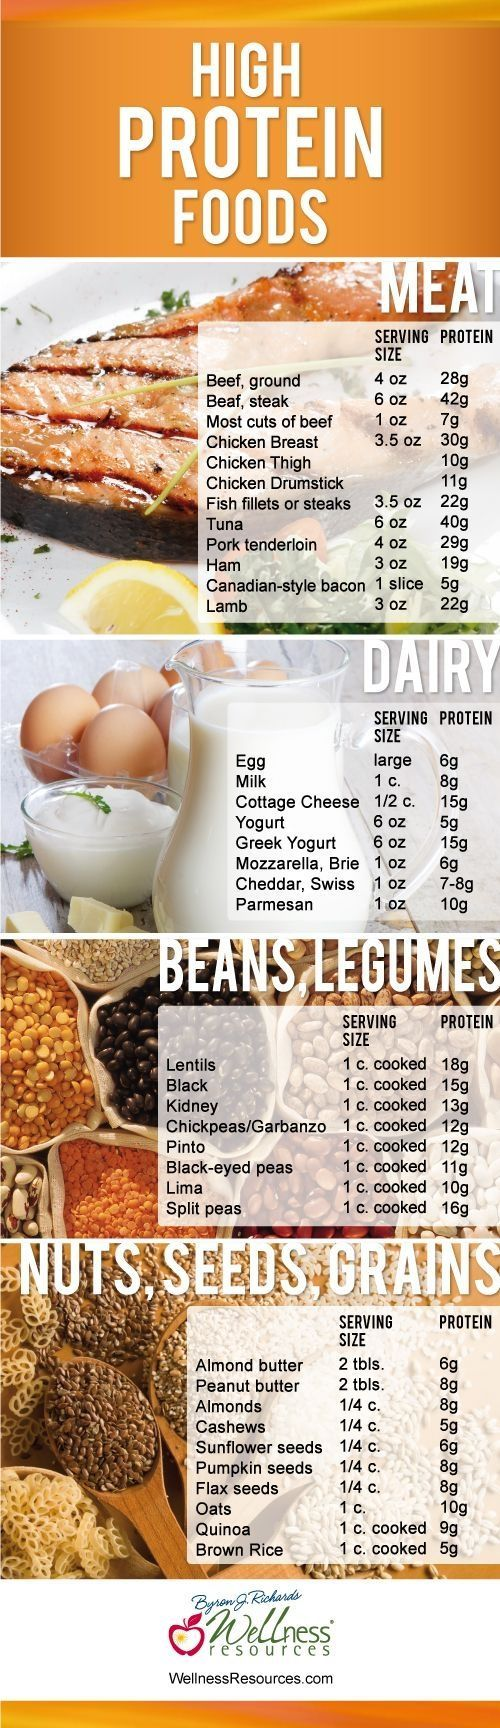 Protein for Weight Loss by beulah